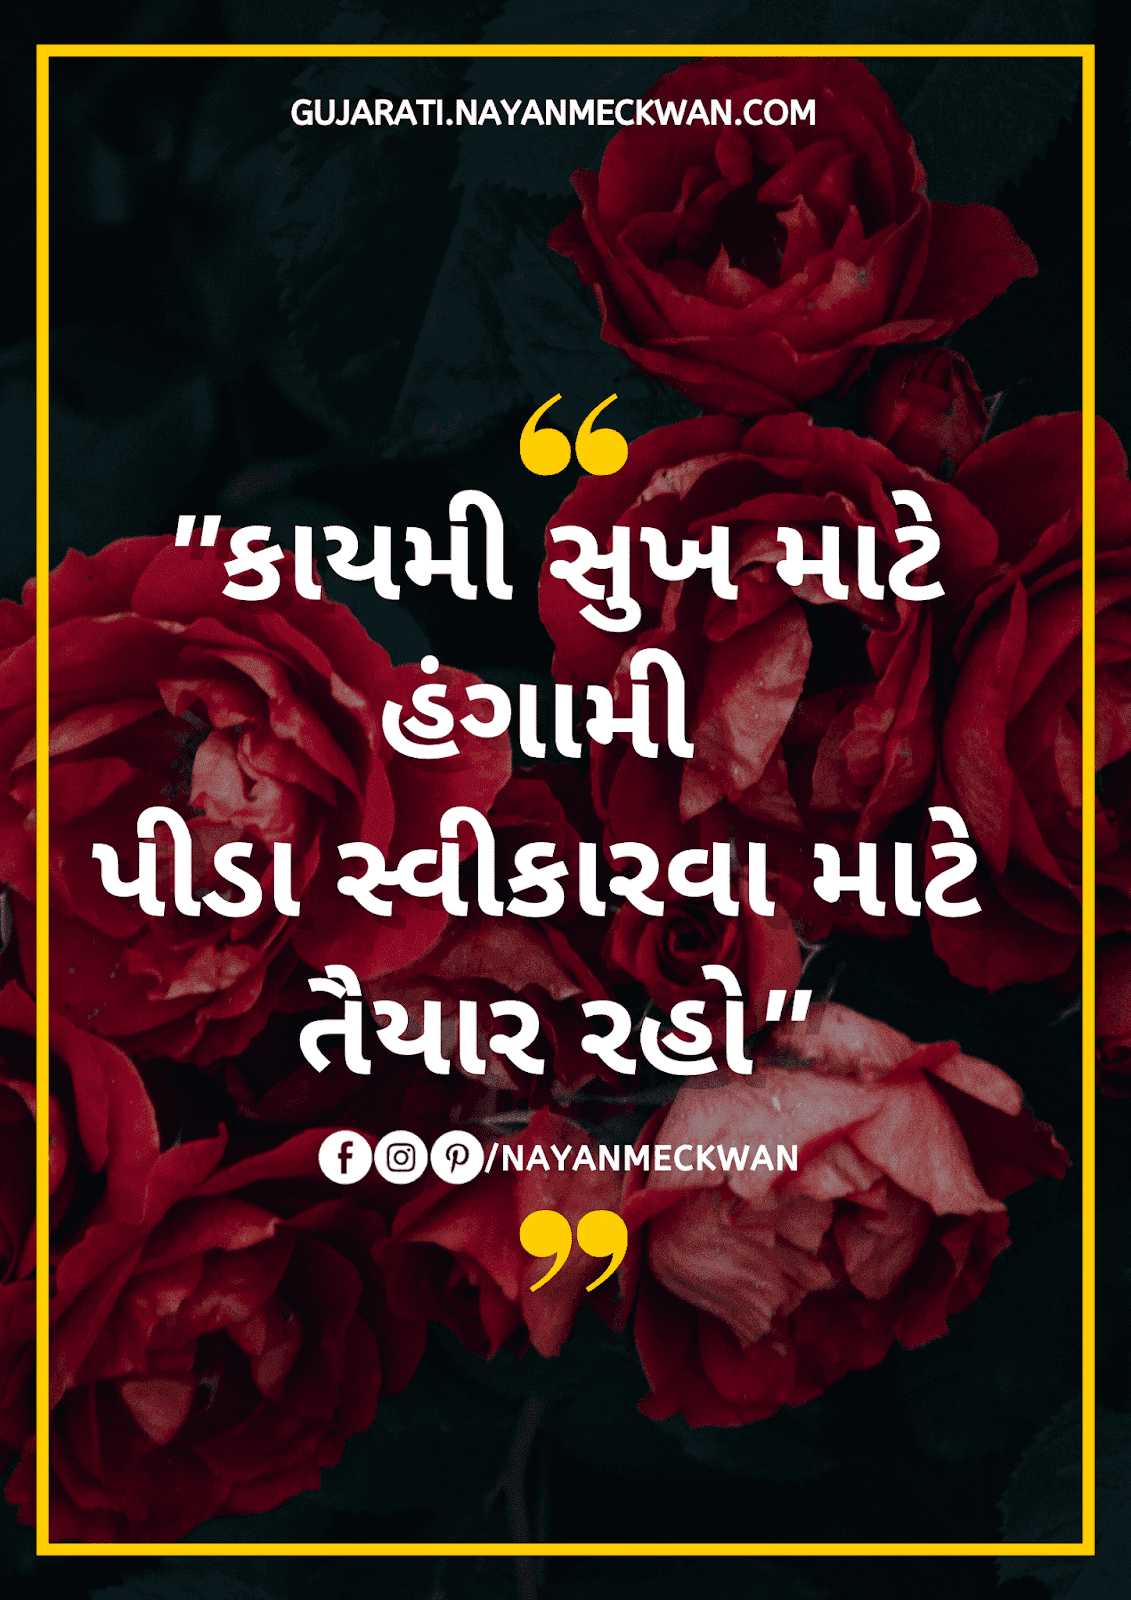 સુખઃ Best Gujarati motivational quotes on life